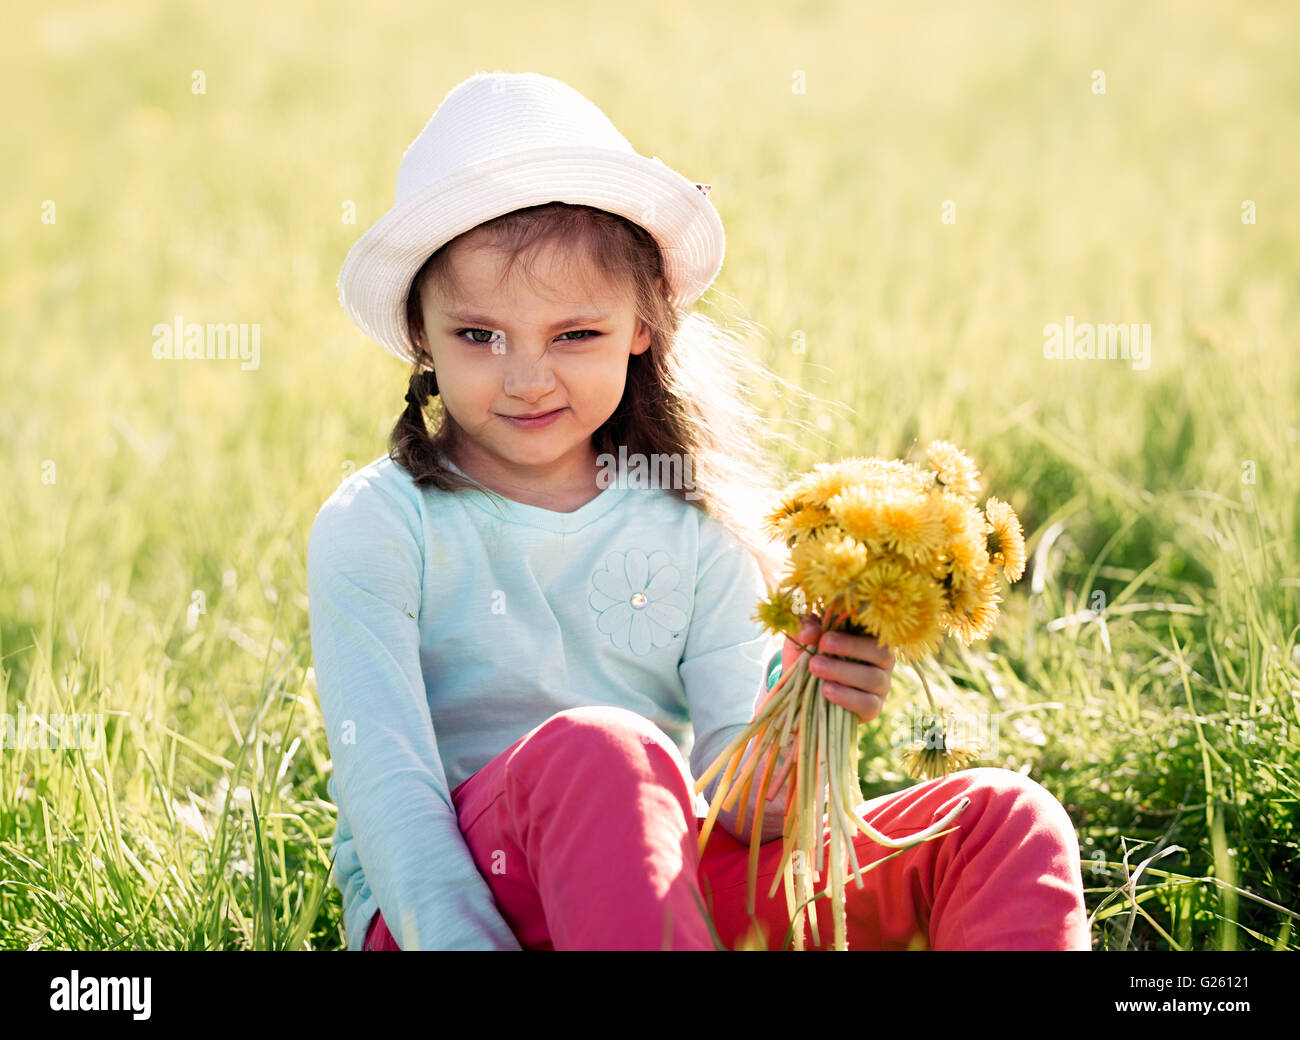 Funny grimacing kid girl in fashion hat sitting on the grass and holding yellow flowers - Stock Image